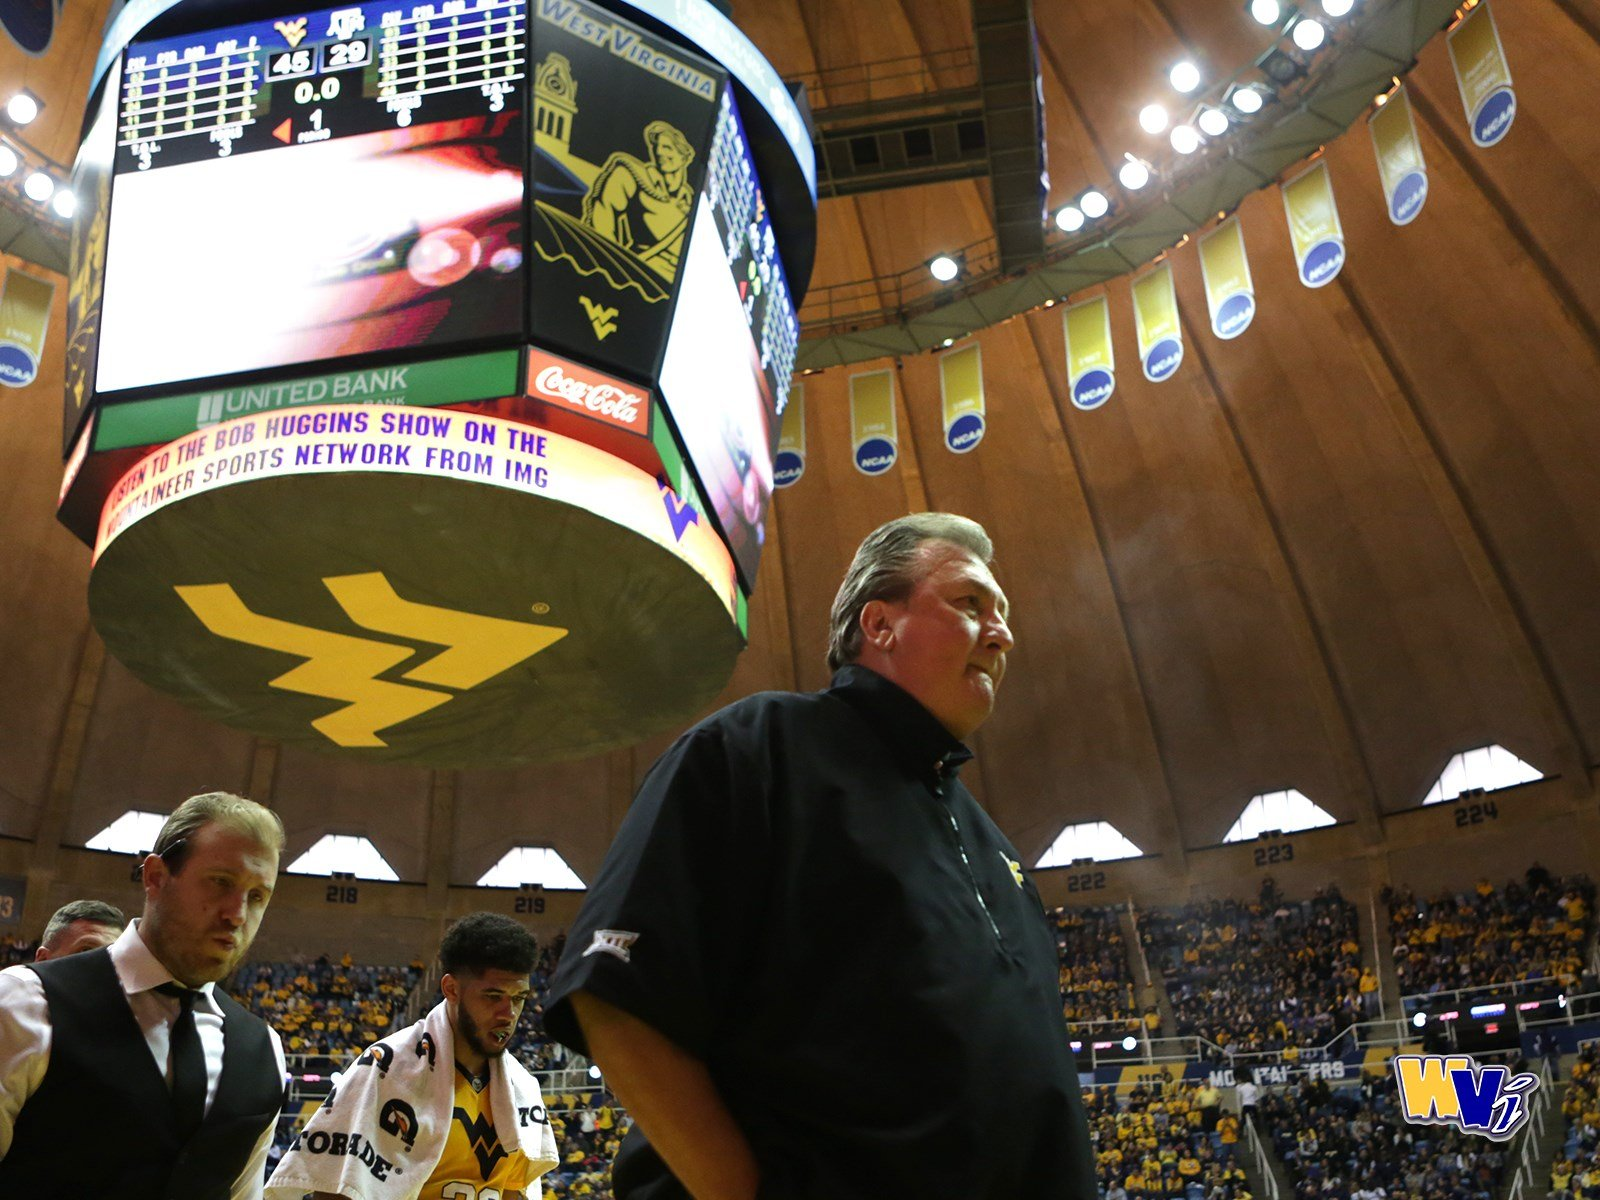 Coach Huggins walks off the court following Saturday's victory over Texas A&M.